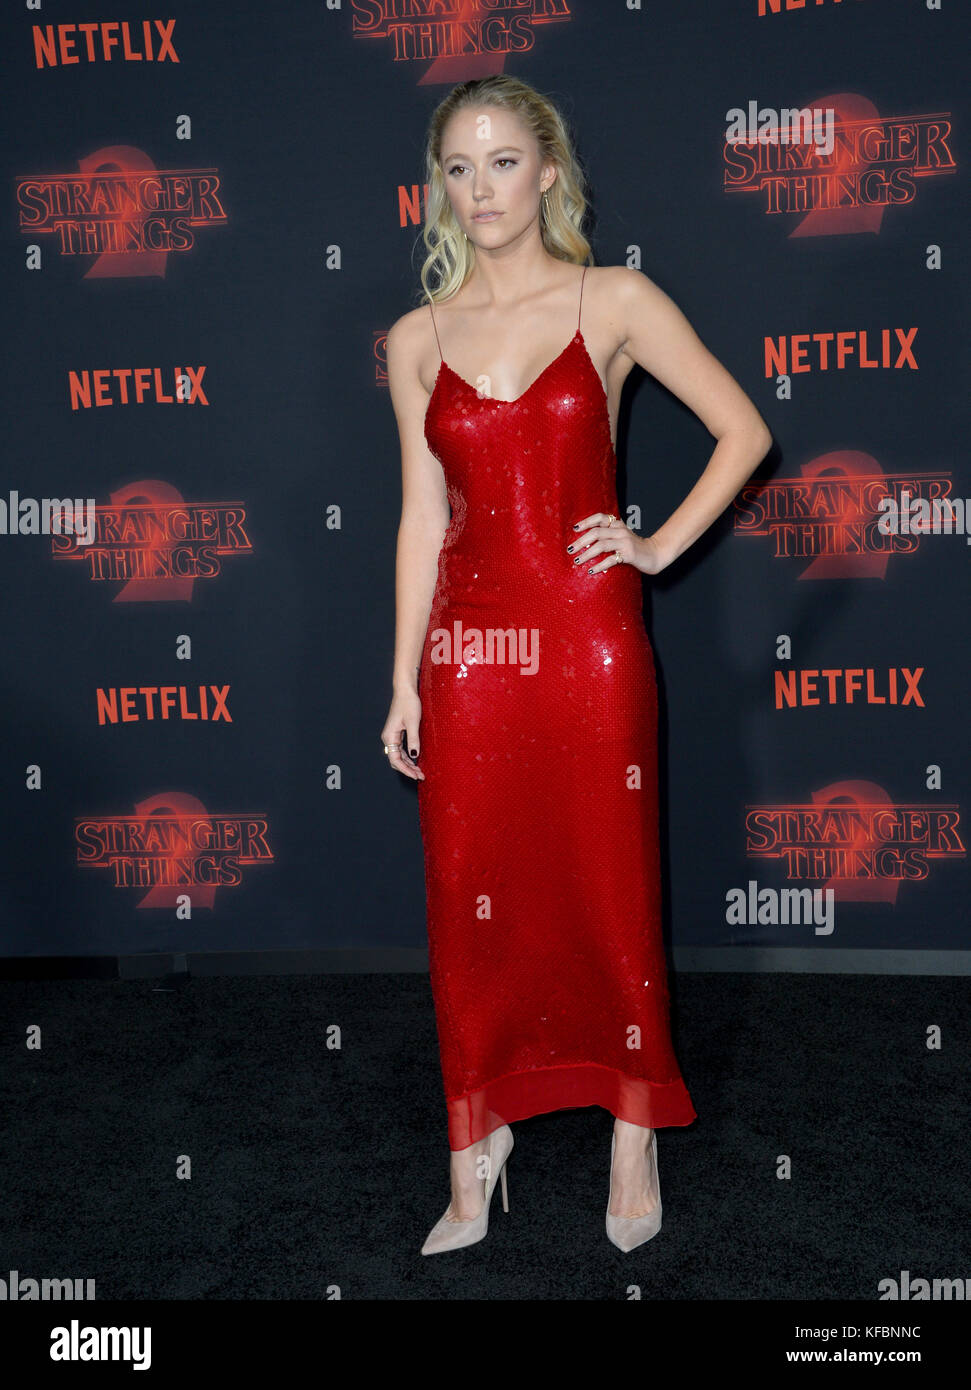 Los Angeles, USA. 26th Oct, 2017. Maika Monroe at the premiere for Netflix's 'Stranger Things 2' at - Stock Image